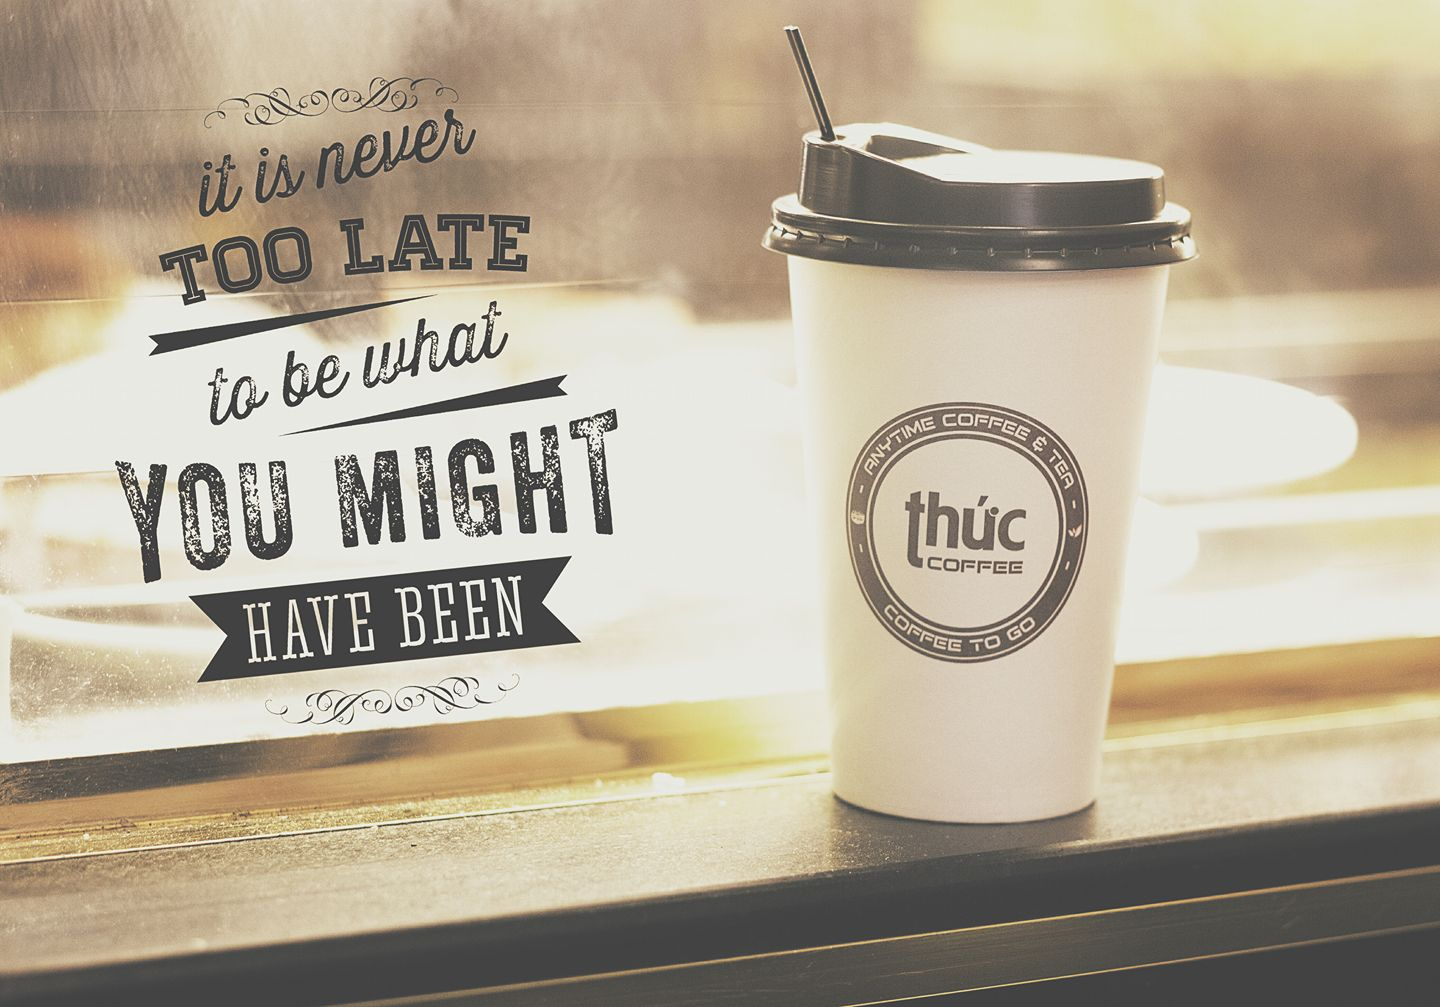 Thức Coffee - At Thức - the life goes on 24/7